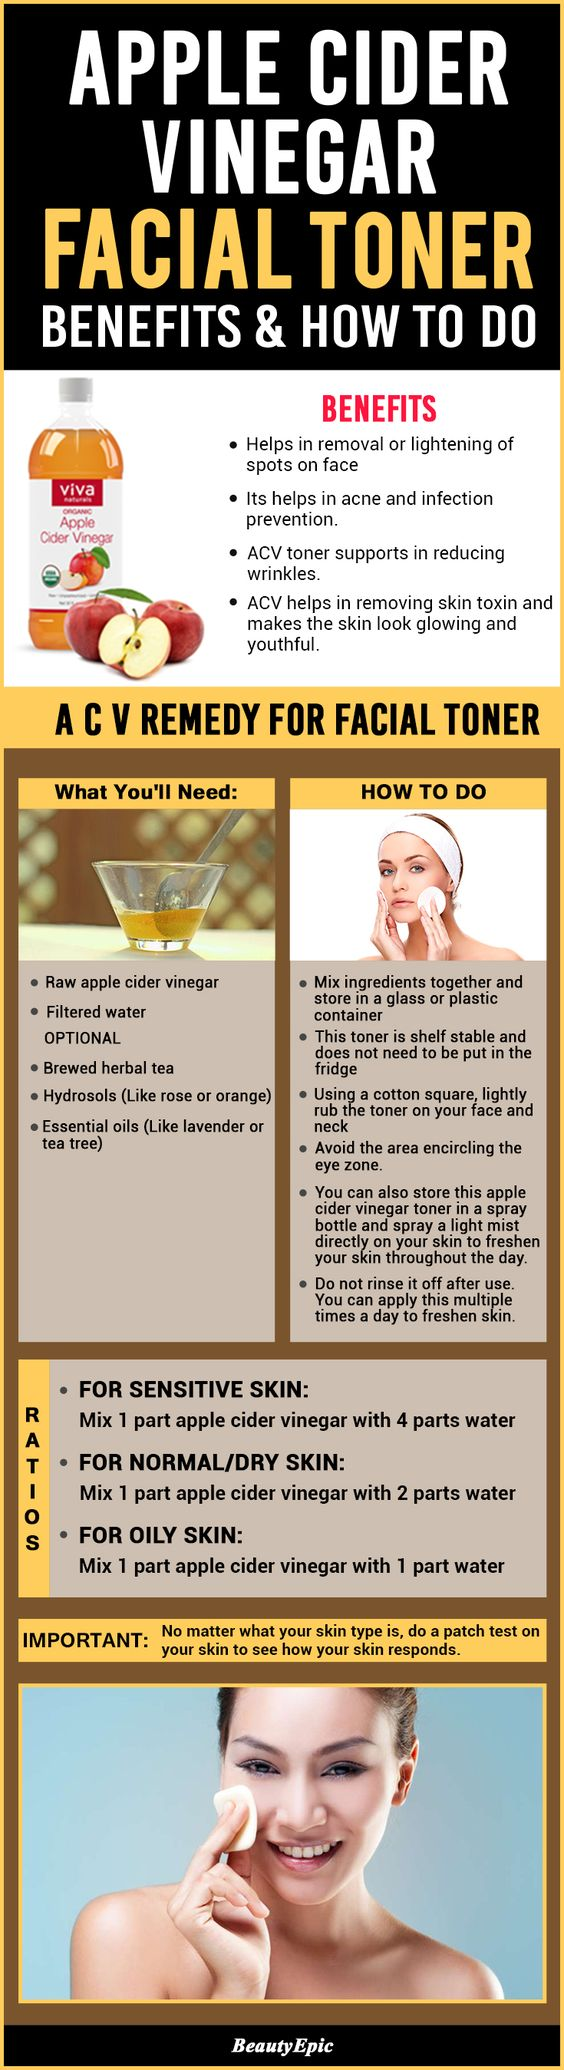 apple cider vinegar as facial toner